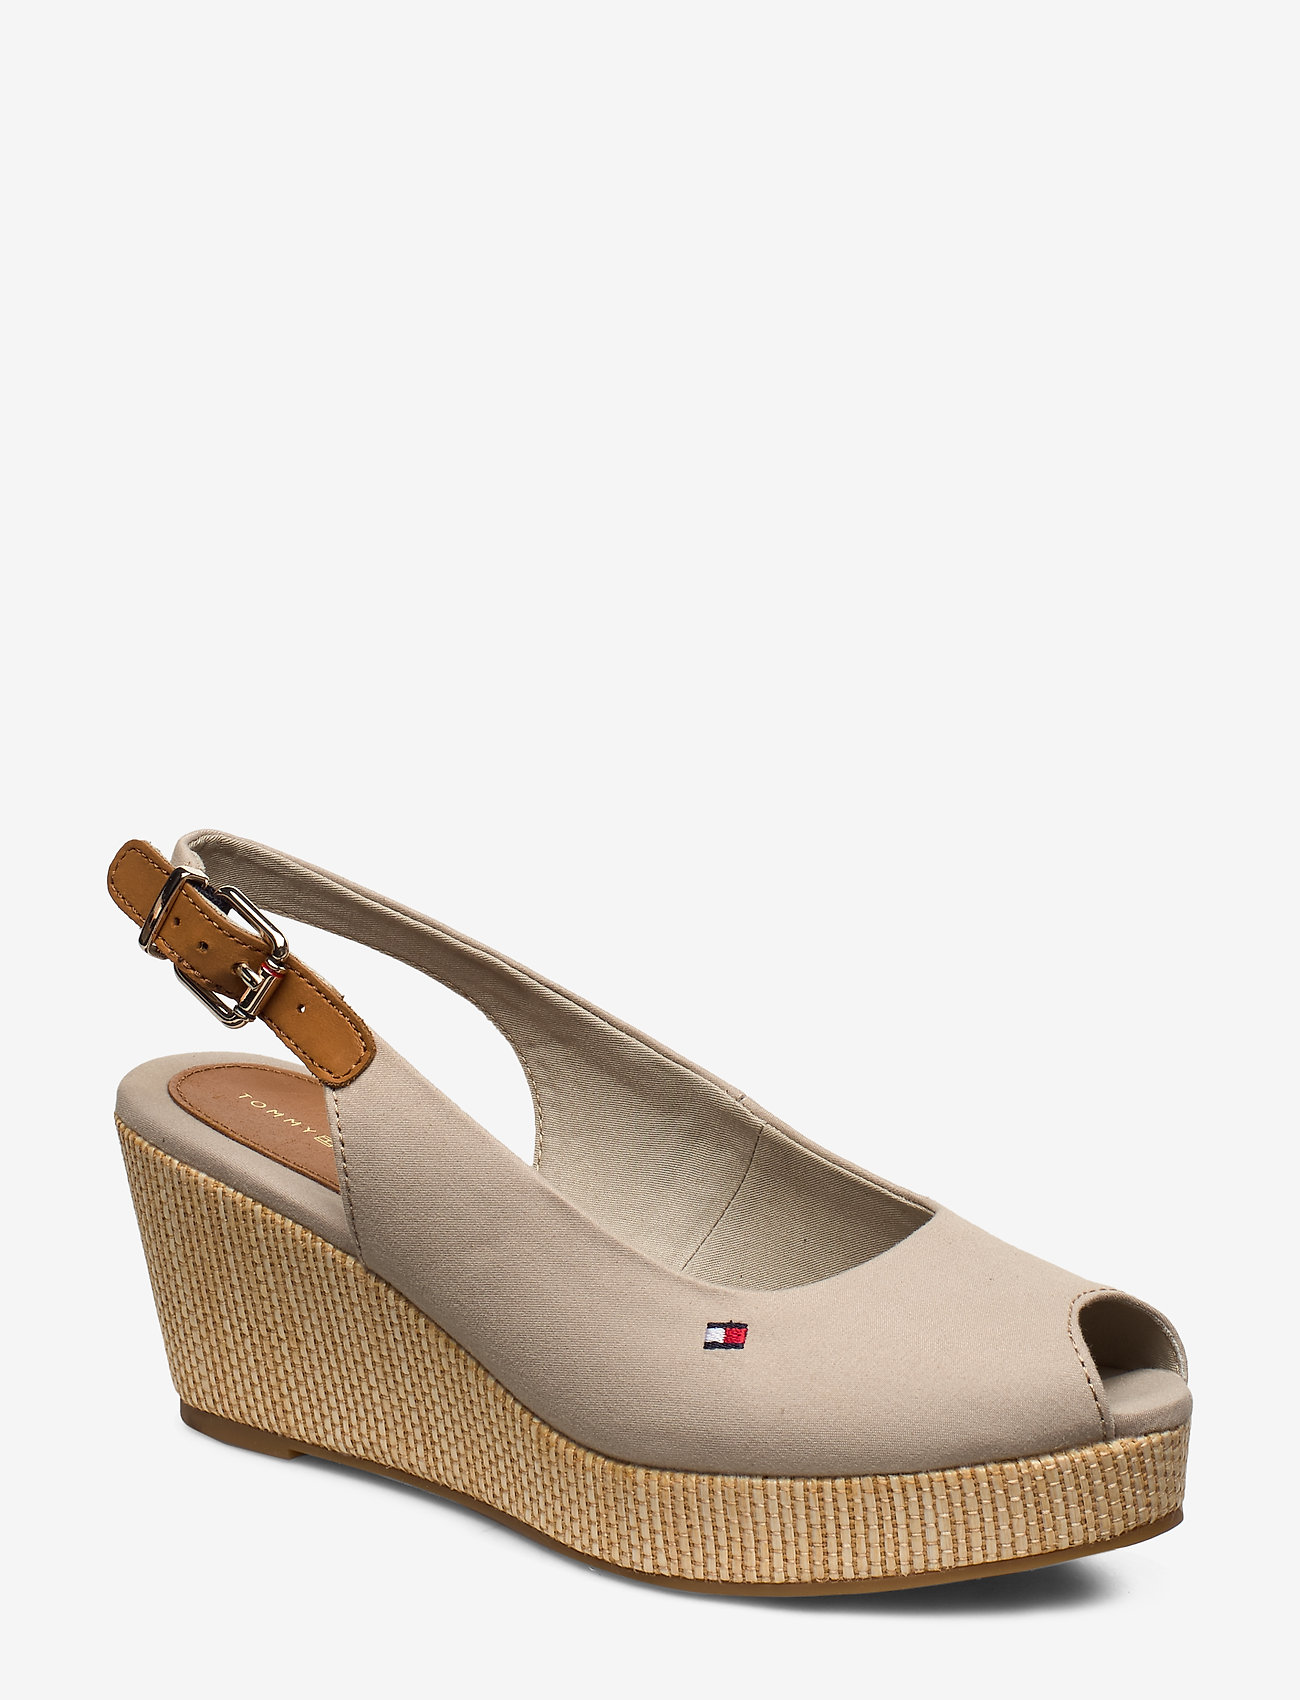 Tommy Hilfiger - ICONIC ELBA SLING BACK WEDGE - sleehakken - stone - 0